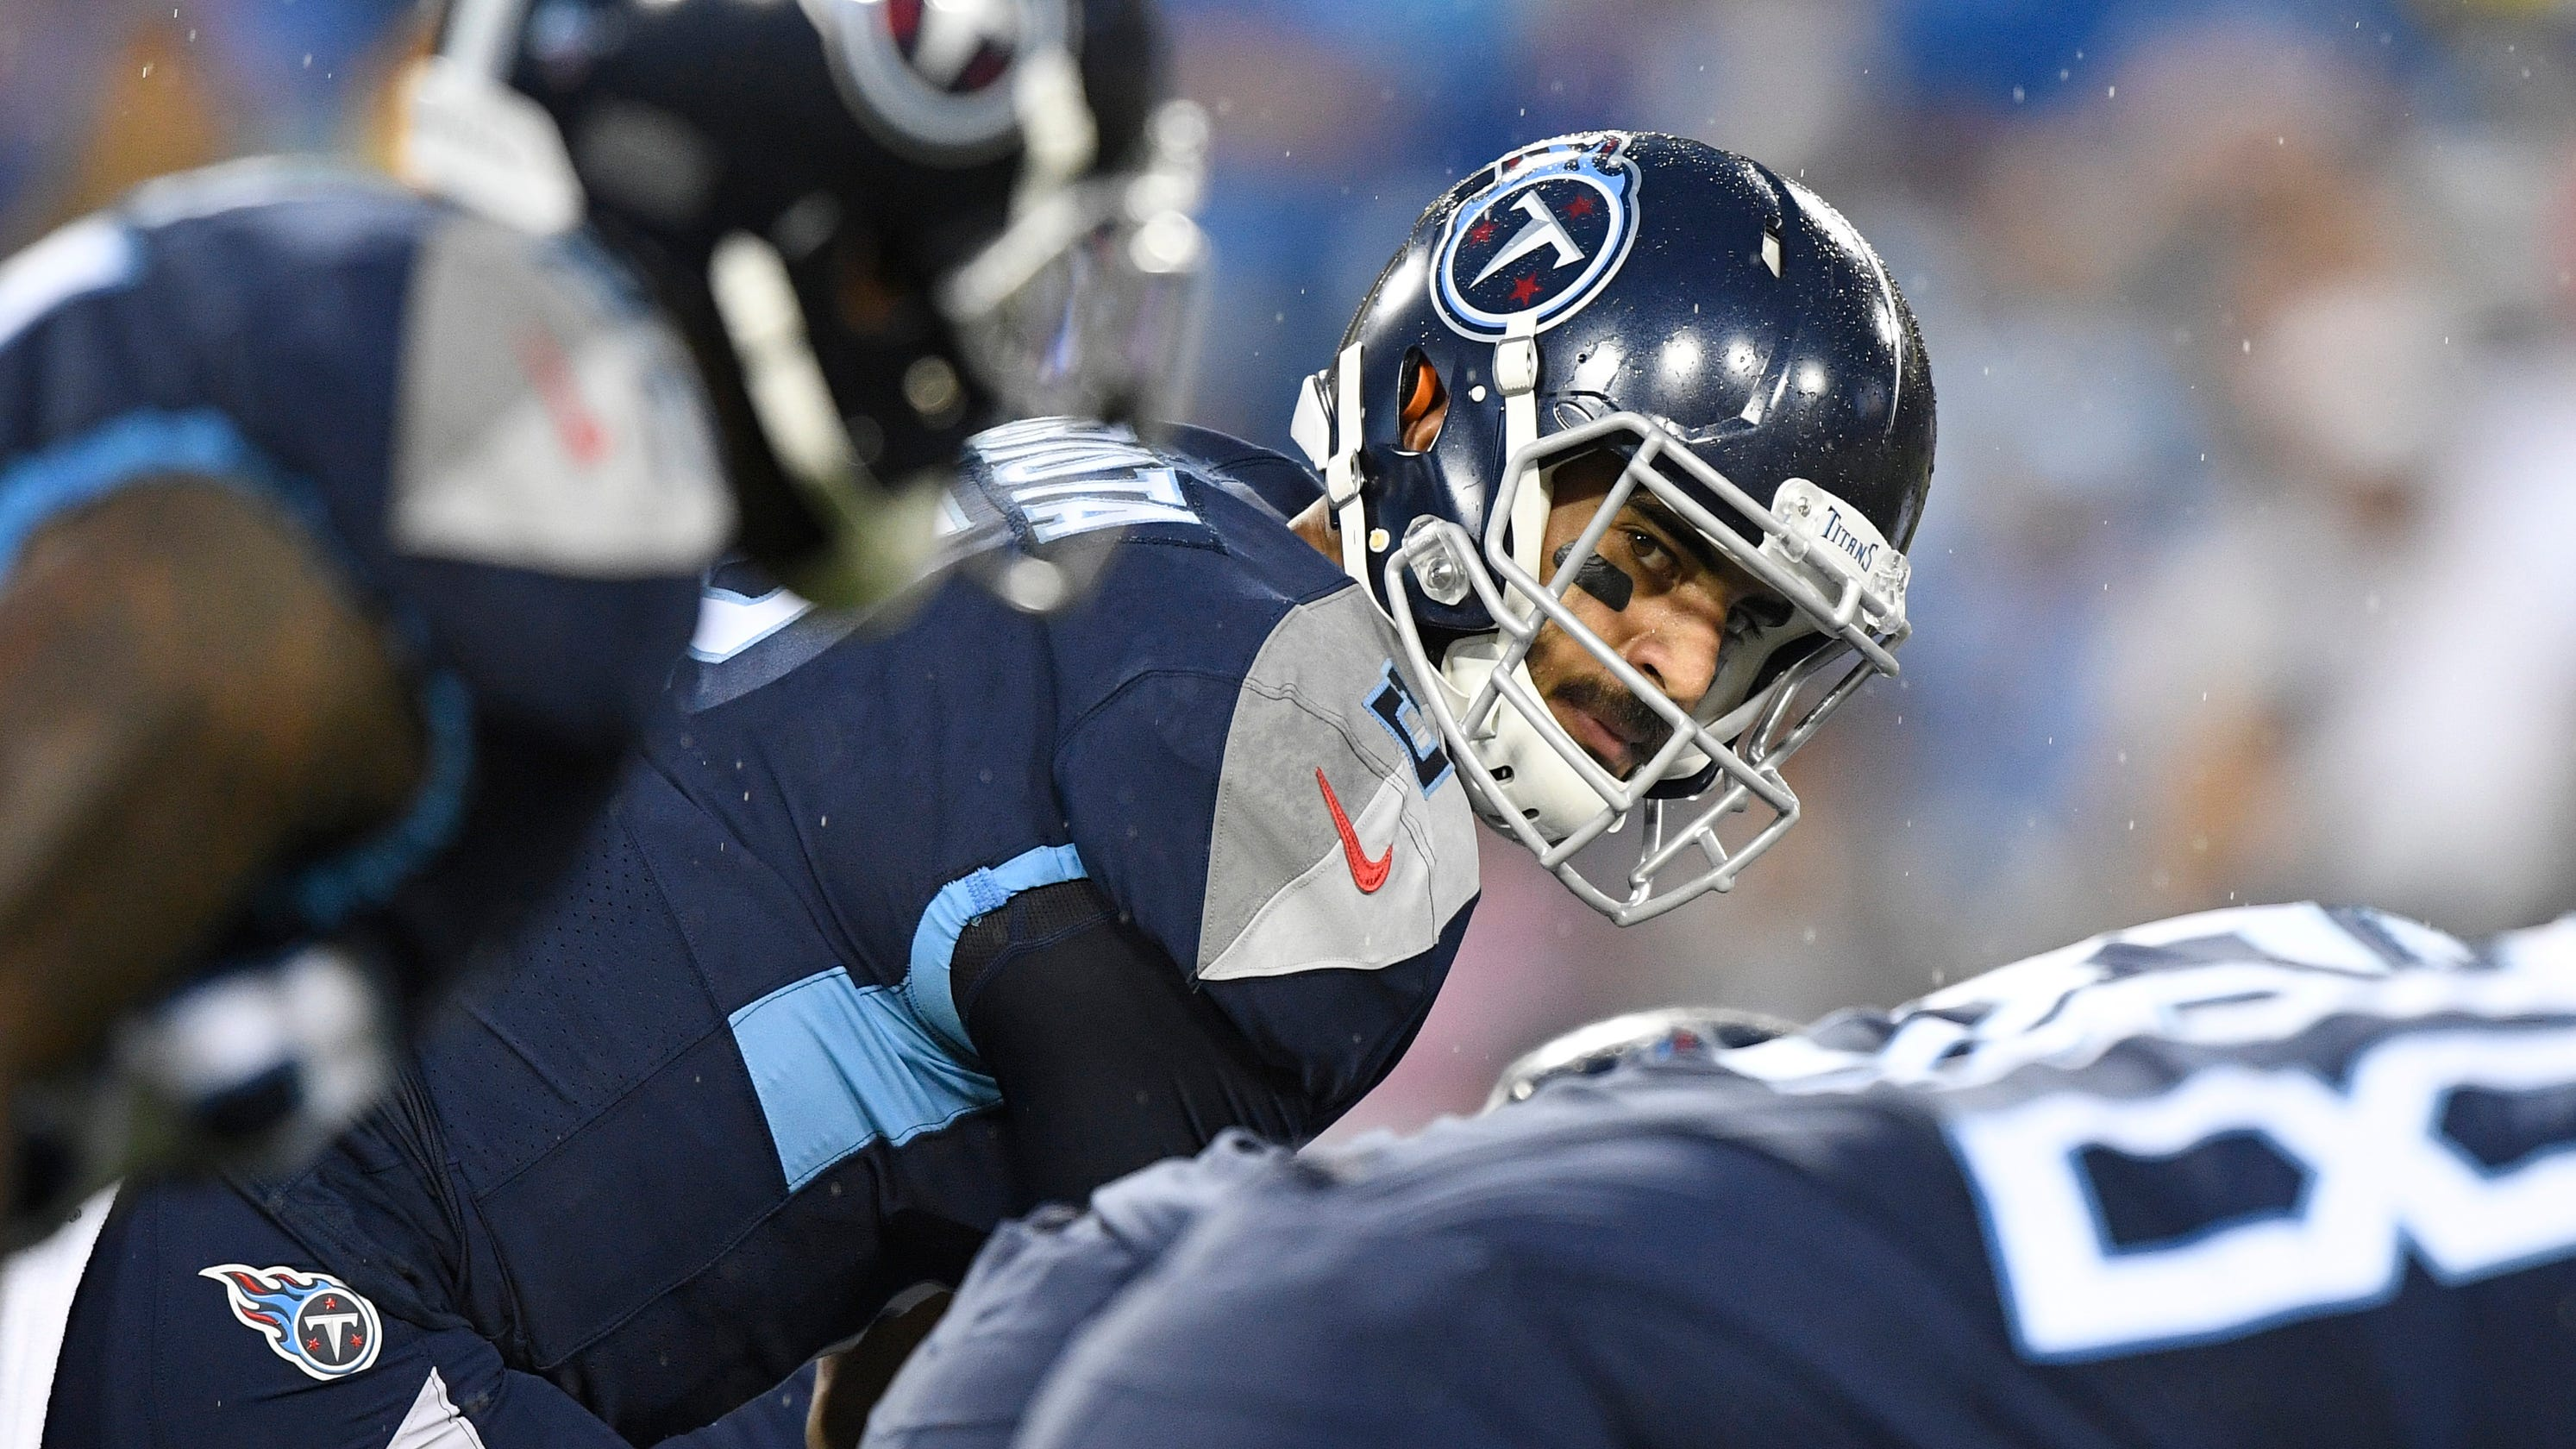 newest 7a56a 668e3 Steelers 18, Titans 6: Five observations, including Marcus ...